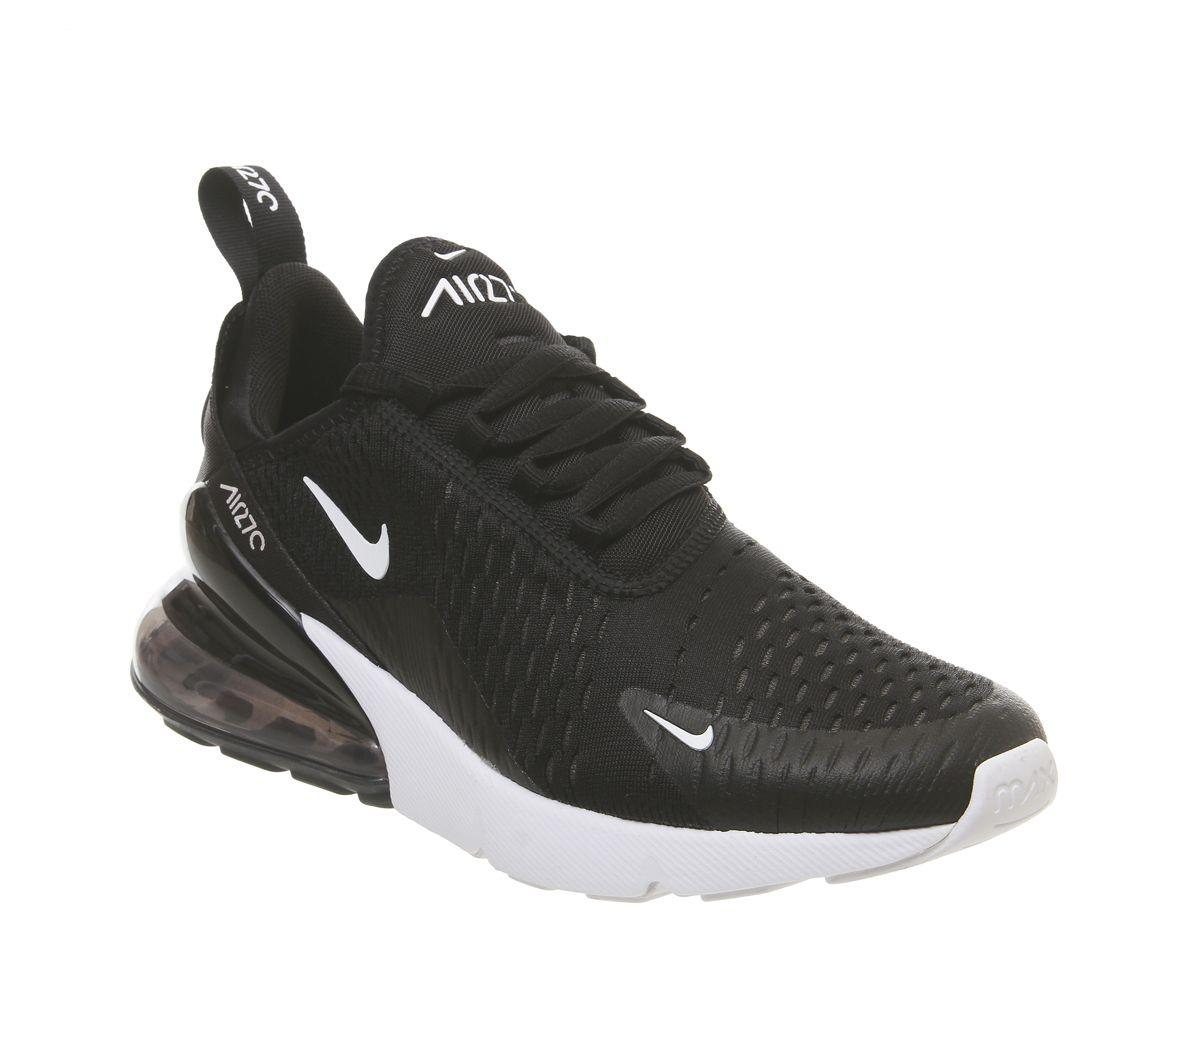 8eb9d21a6b528 Lyst - Nike Air Max 270 Trainers in Black - Save 16%